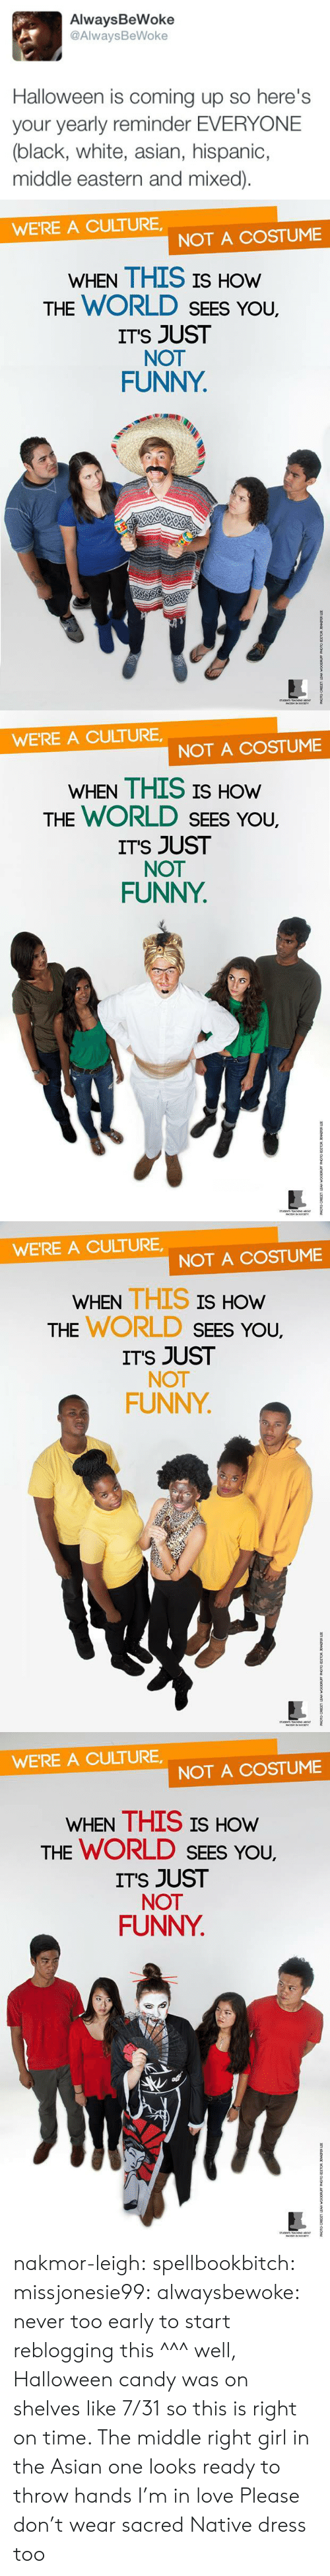 coming up: AlwaysBeWoke  @AlwaysBeWoke  Halloween is coming up so here's  your yearly reminder EVERYONE  (black, white, asian, hispanic,  middle eastern and mixed)   WE'RE A CULTURE  NOT A COSTUME  WHEN THIS IS HOW  THE WORLD SEES YoU.  ITS JUST  NOT  FUNNY   WE'RE A CULTURE  NOT A COSTUME  WHEN THIS IS HOW  THE WORLD SEES YoU.  ITS JUST  NOT  FUNNY   WE'RE A CULTURE,  NOT A COSTUME  WHEN THIS IS  HOW  THE WORLD SEEs You,  ITS JUST  NOT  FUNNY   WE'RE A CULTURE  NOT A COSTUME  WHEN THIS IS HOw  THE WORLD SEES You,  ITS JUST  NOT  FUNNY nakmor-leigh: spellbookbitch:  missjonesie99:  alwaysbewoke:  never too early to start reblogging this  ^^^ well, Halloween candy was on shelves like 7/31 so this is right on time.    The middle right girl in the Asian one looks ready to throw hands I'm in love   Please don't wear sacred Native dress too